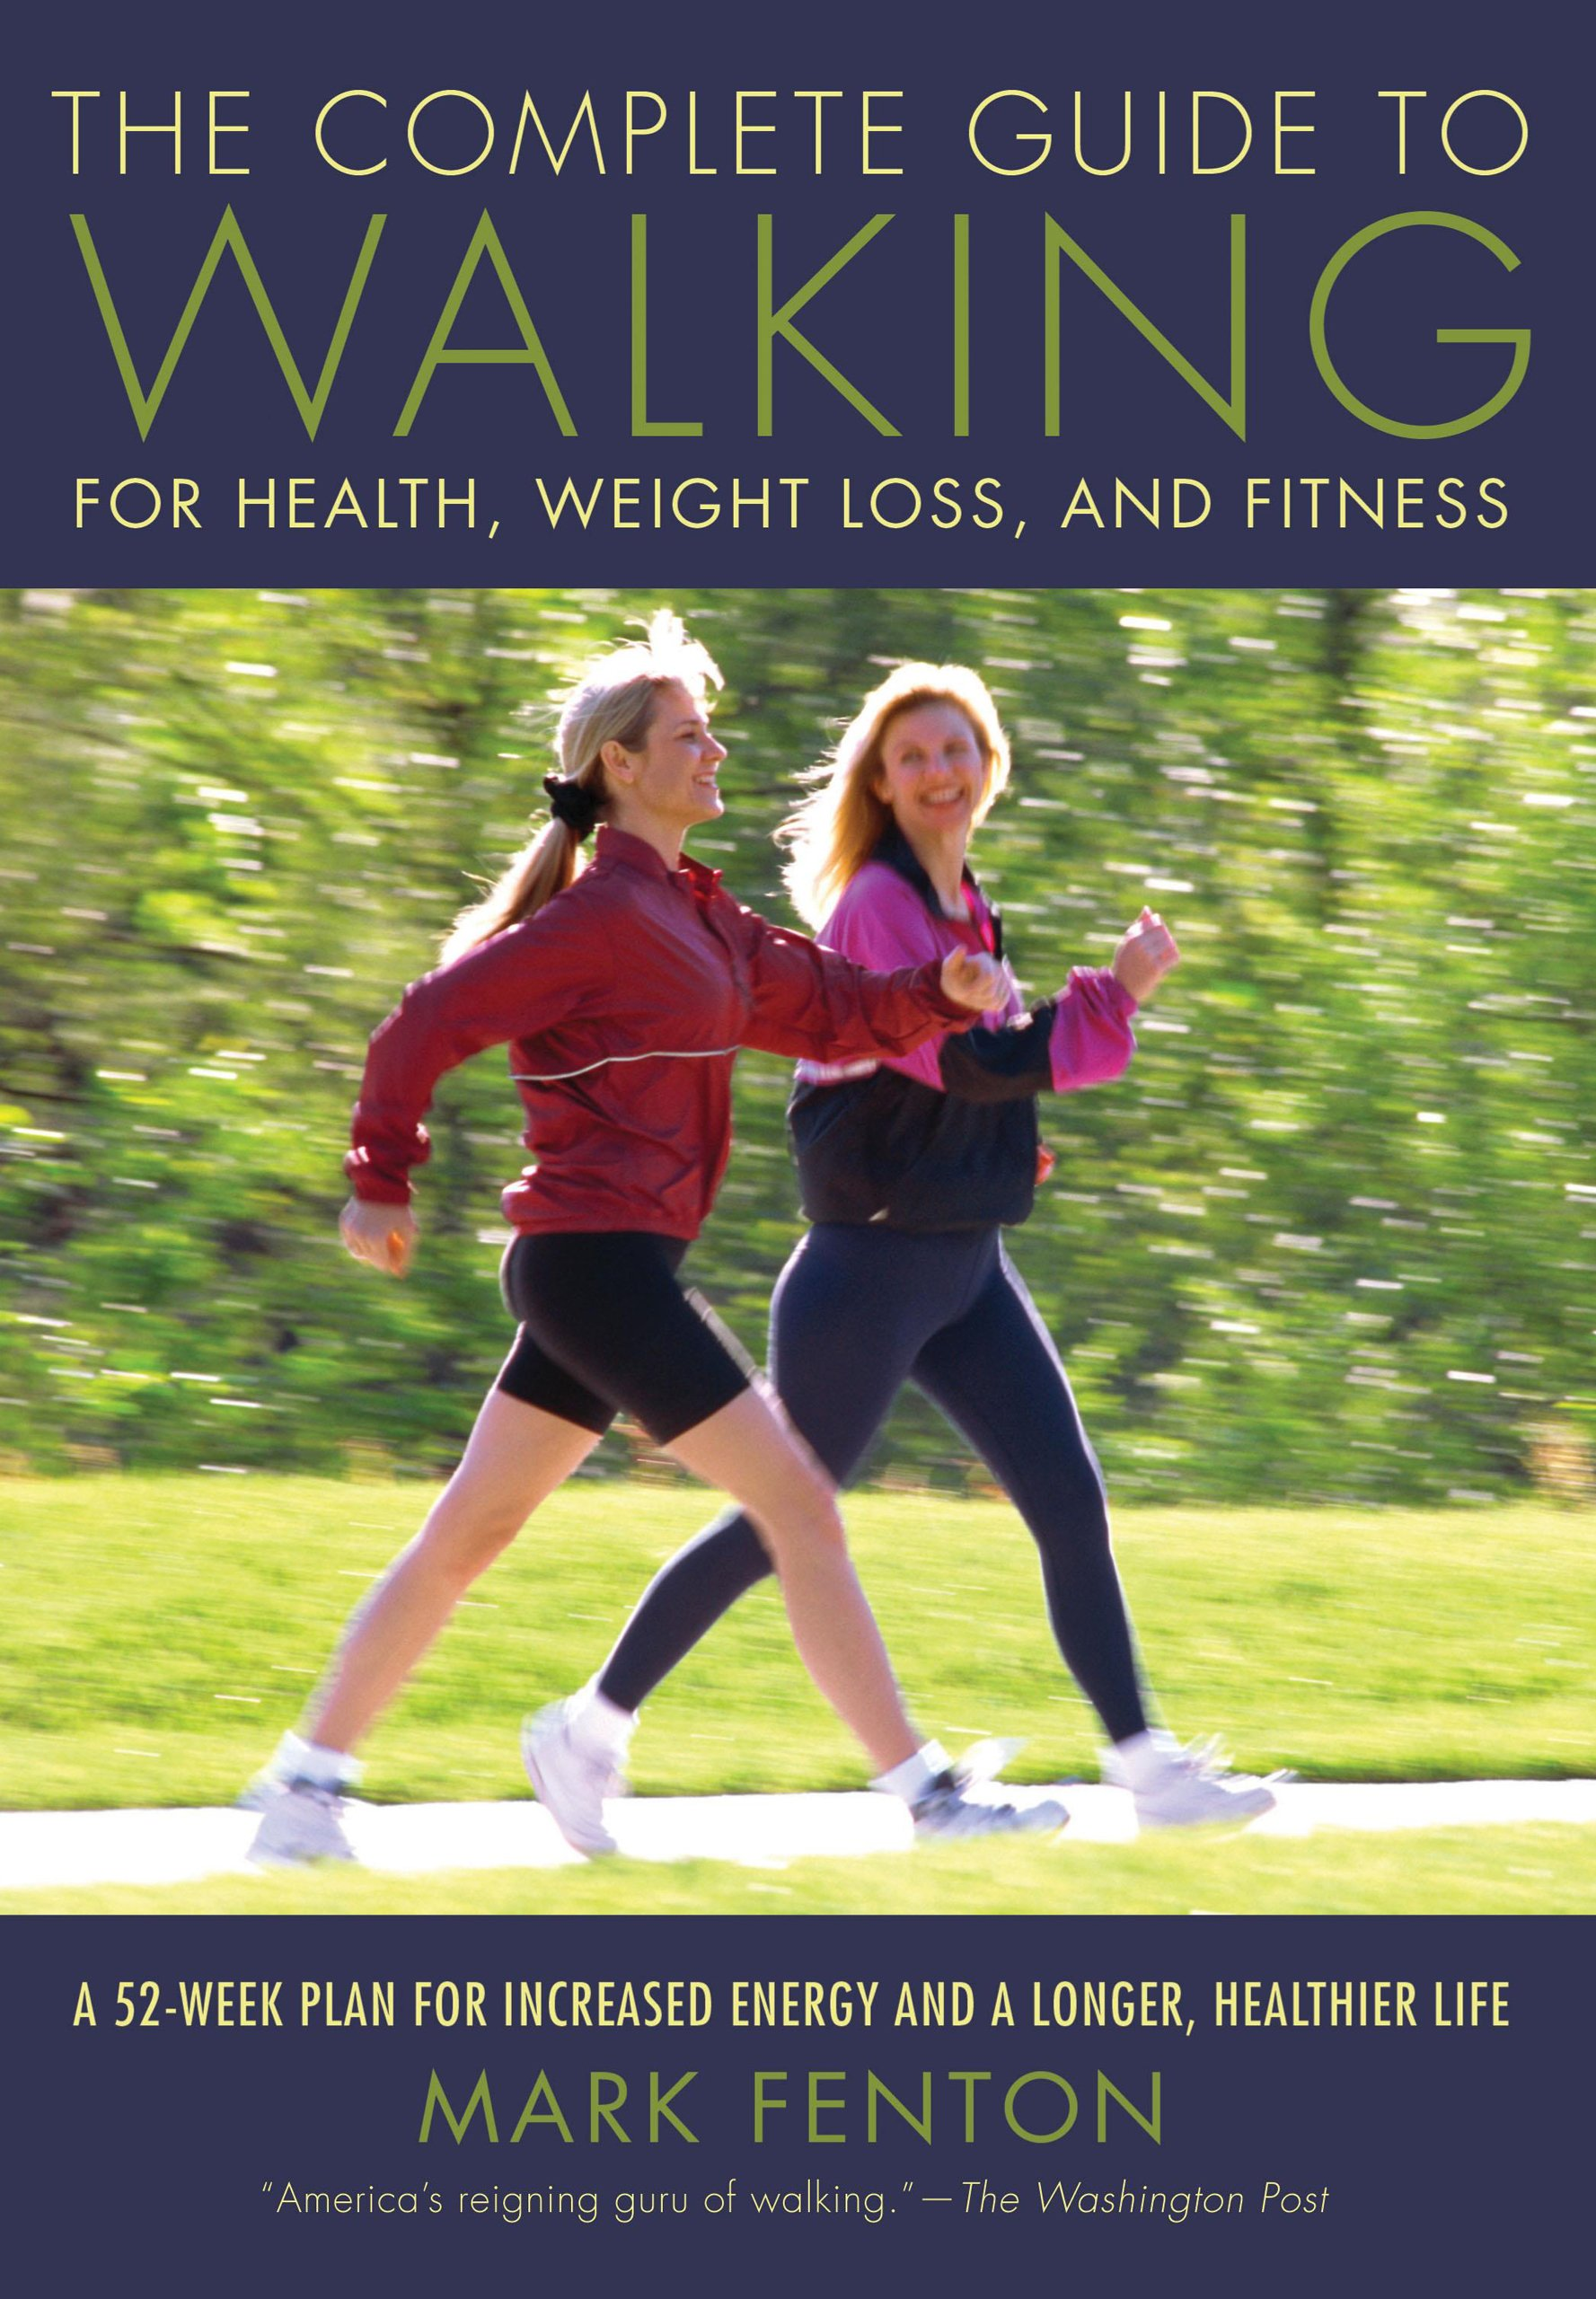 "the complete guide to walking - By Mark FentonThis comprehensive, approachable guide to all things walking is conversational in tone and gives a wealth of information about walking without being dry. The focus here is on fitness and health, not weight loss per se, which is refreshing. My favorite quote from the book is: ""In an ideal world… our greatest concern about our bodies would simply be wringing the most life out of them. We'd want the longest, healthiest, most energetic, active adventurous lives our bodies could offer."""